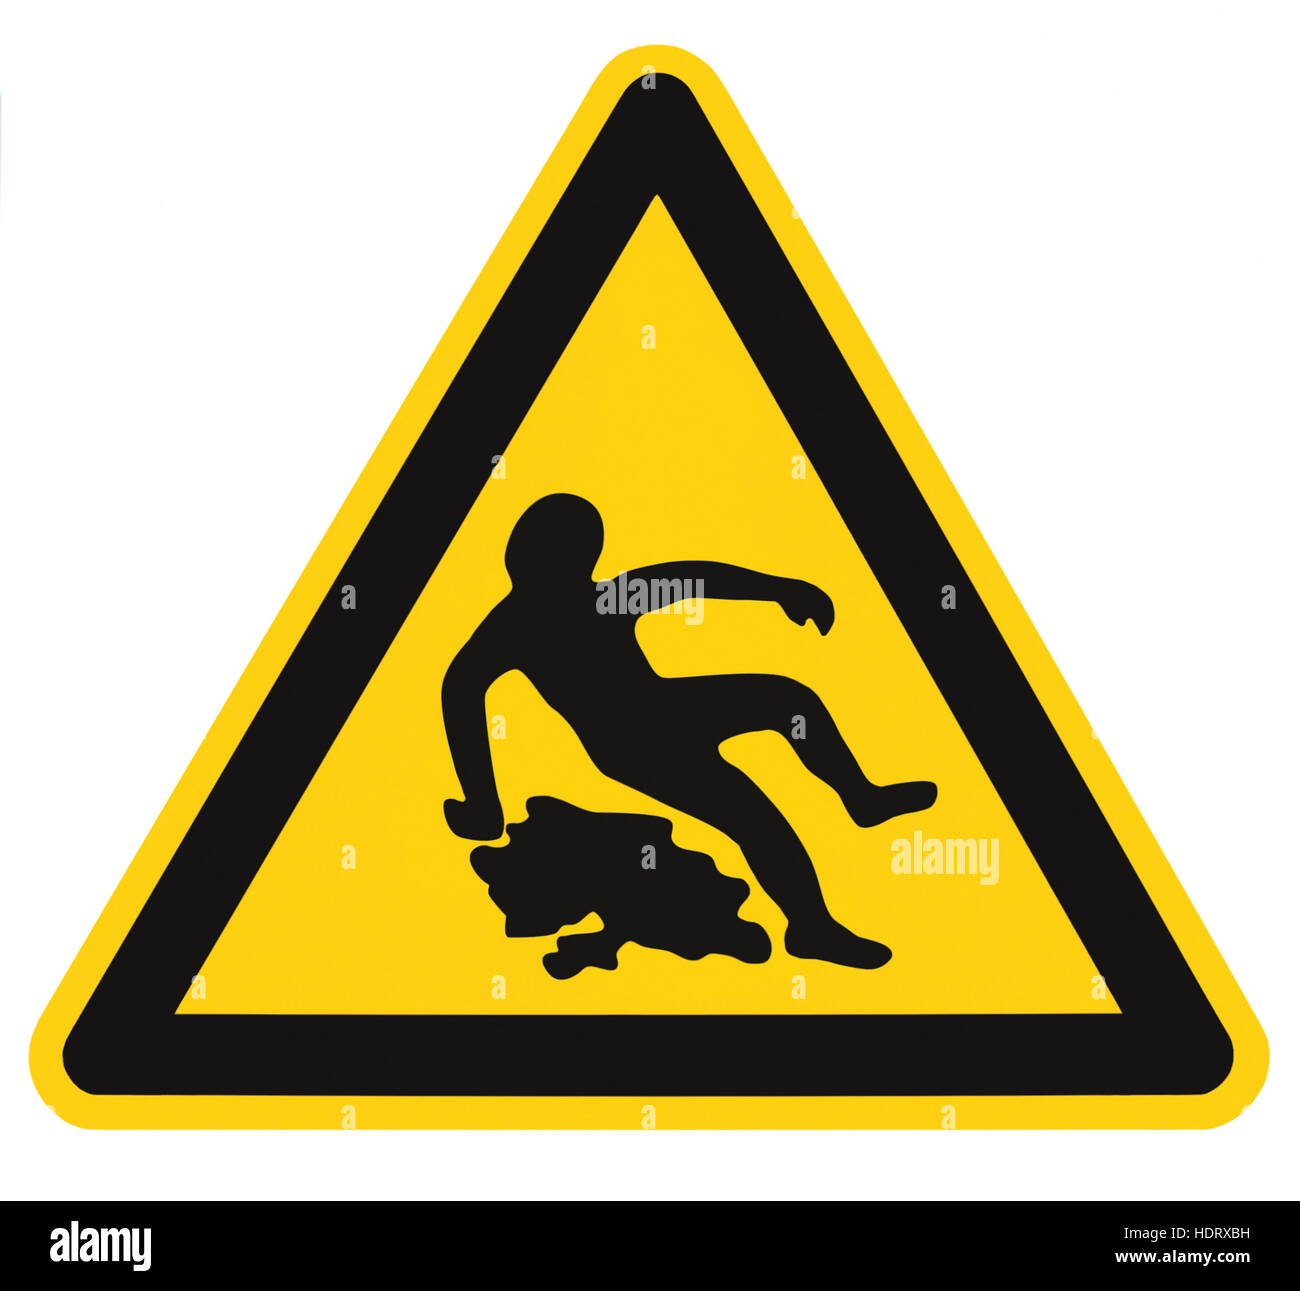 Caution Slippery When Wet Text Sign, Black Yellow Isolated Floor Surface Area Danger Warning Triangle Safety Icon - Stock Image